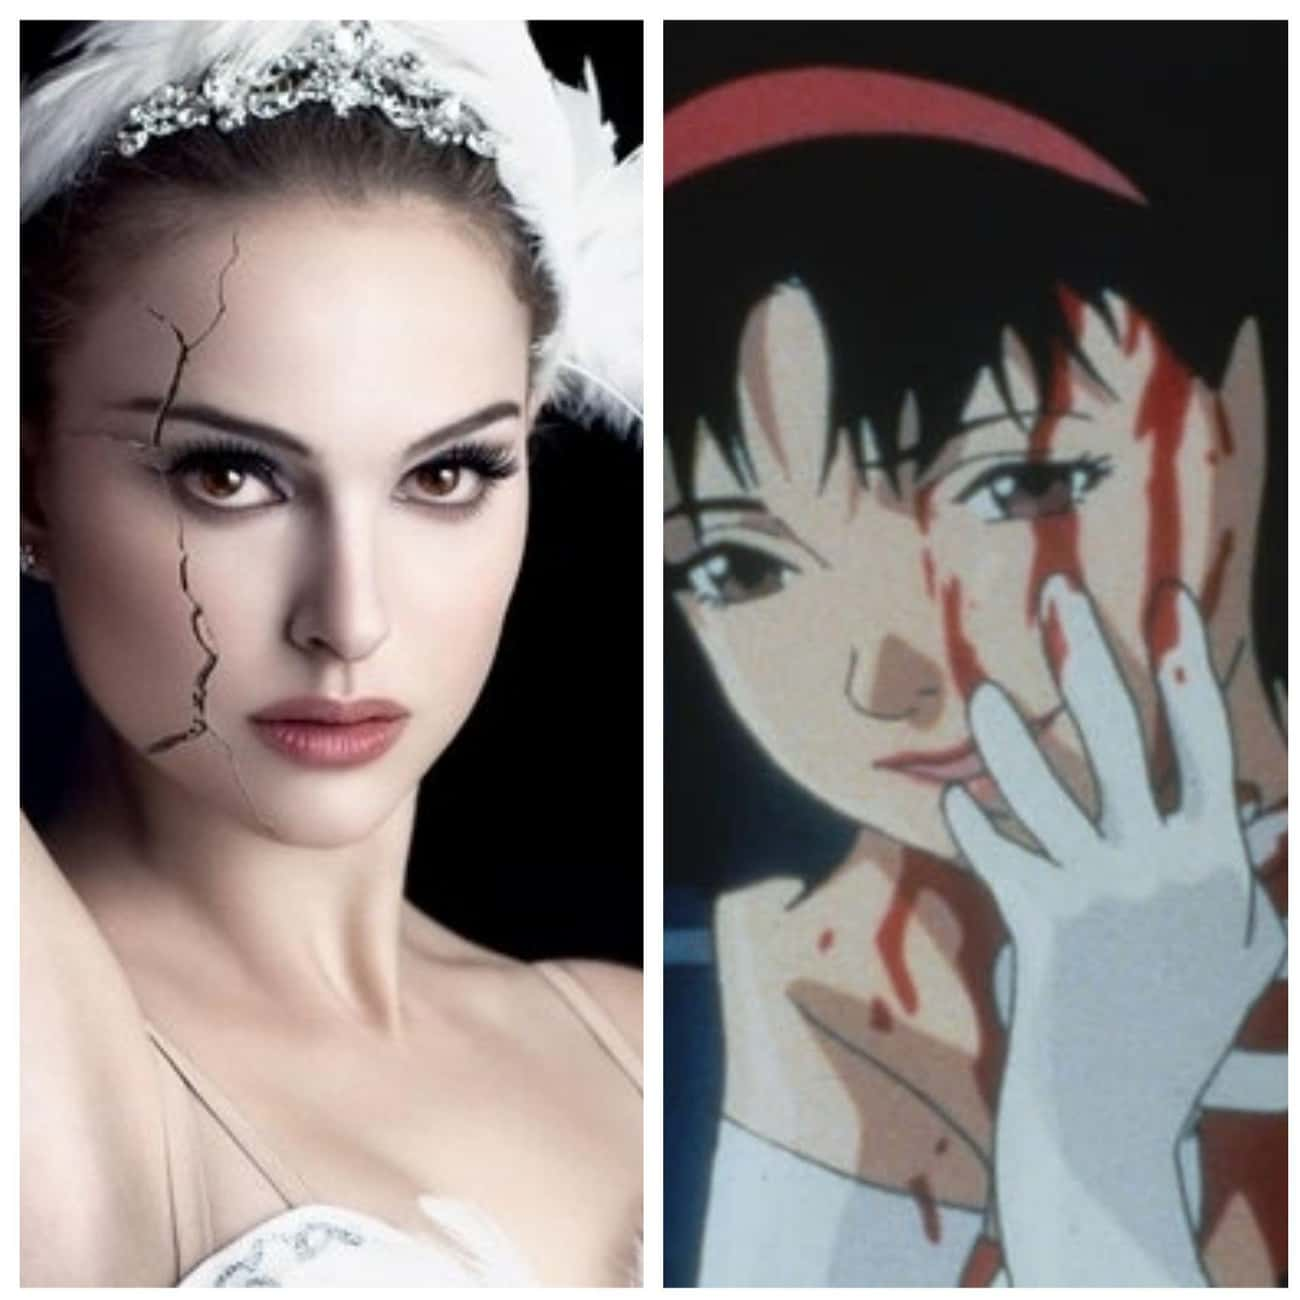 Black Swan is listed (or ranked) 3 on the list 13 American Films That Were Influenced By Anime